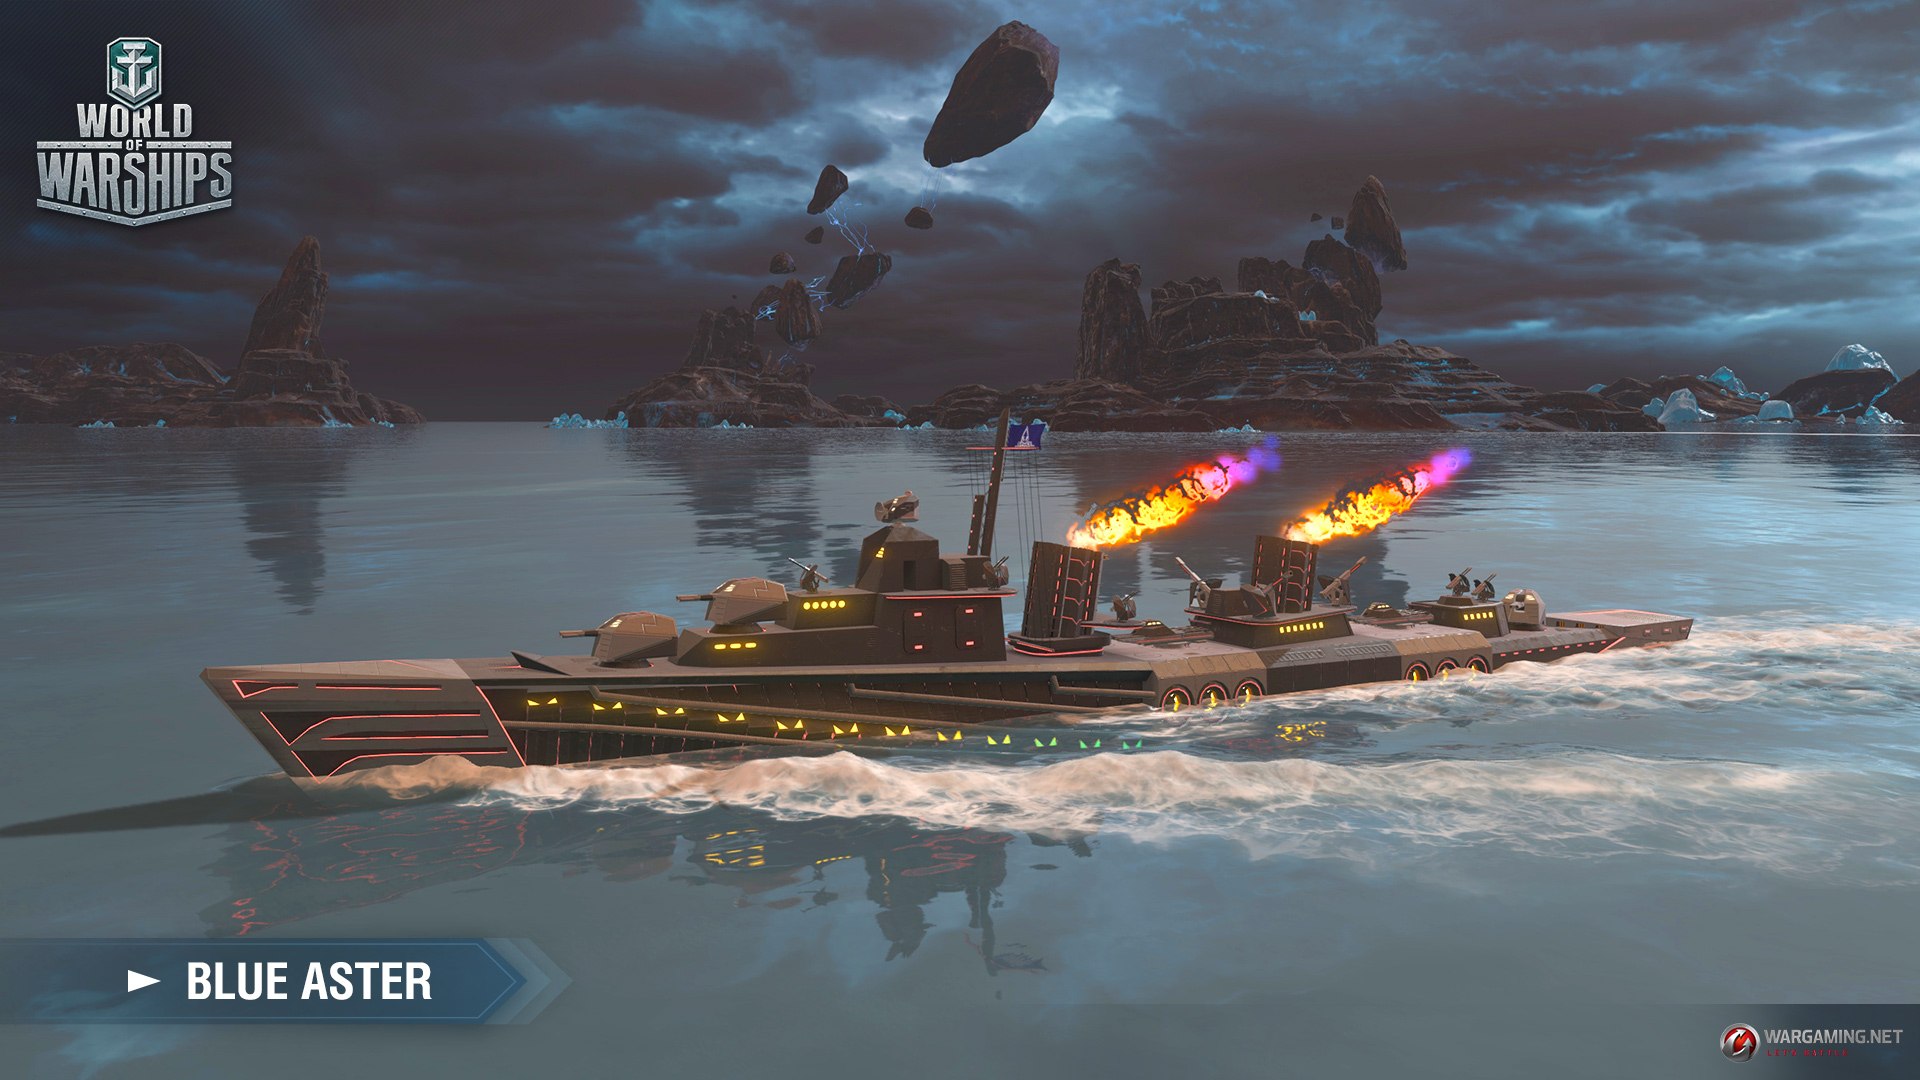 WG_WoWS_SPb_Screenshots_082_Blue_Aster_1920x1080